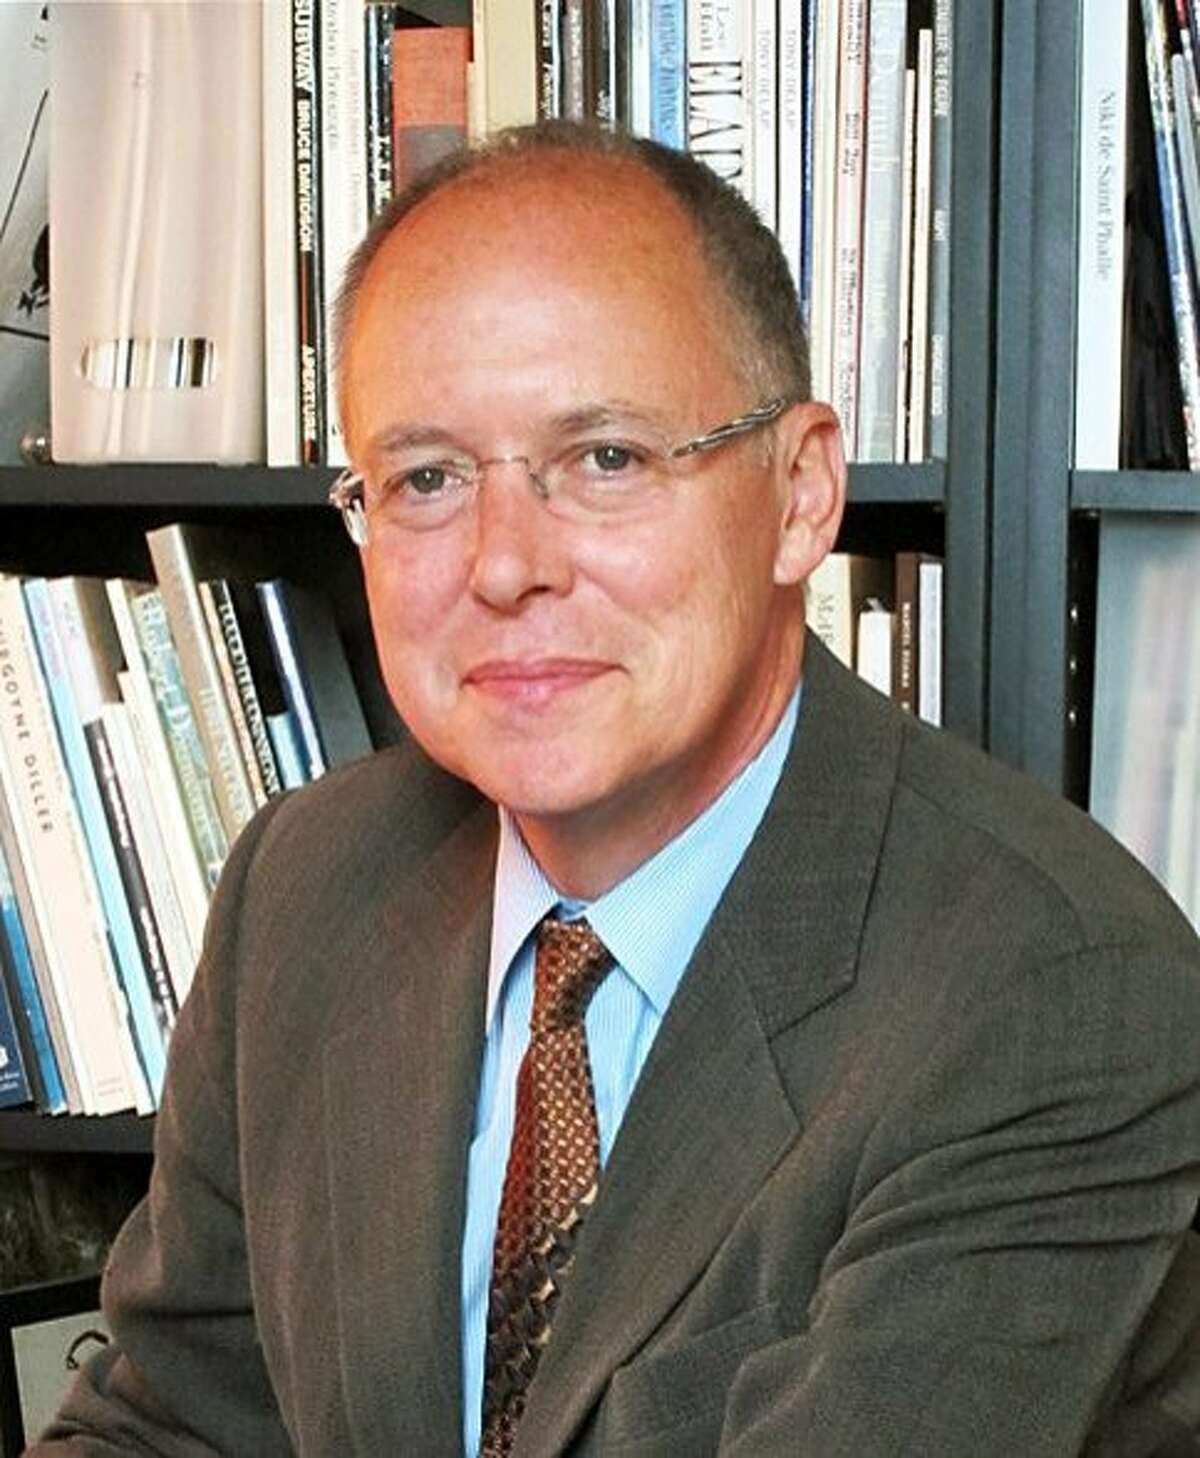 Charles Desmarais, president and CEO of the San Francisco Art Institute (as of 8/01/11)